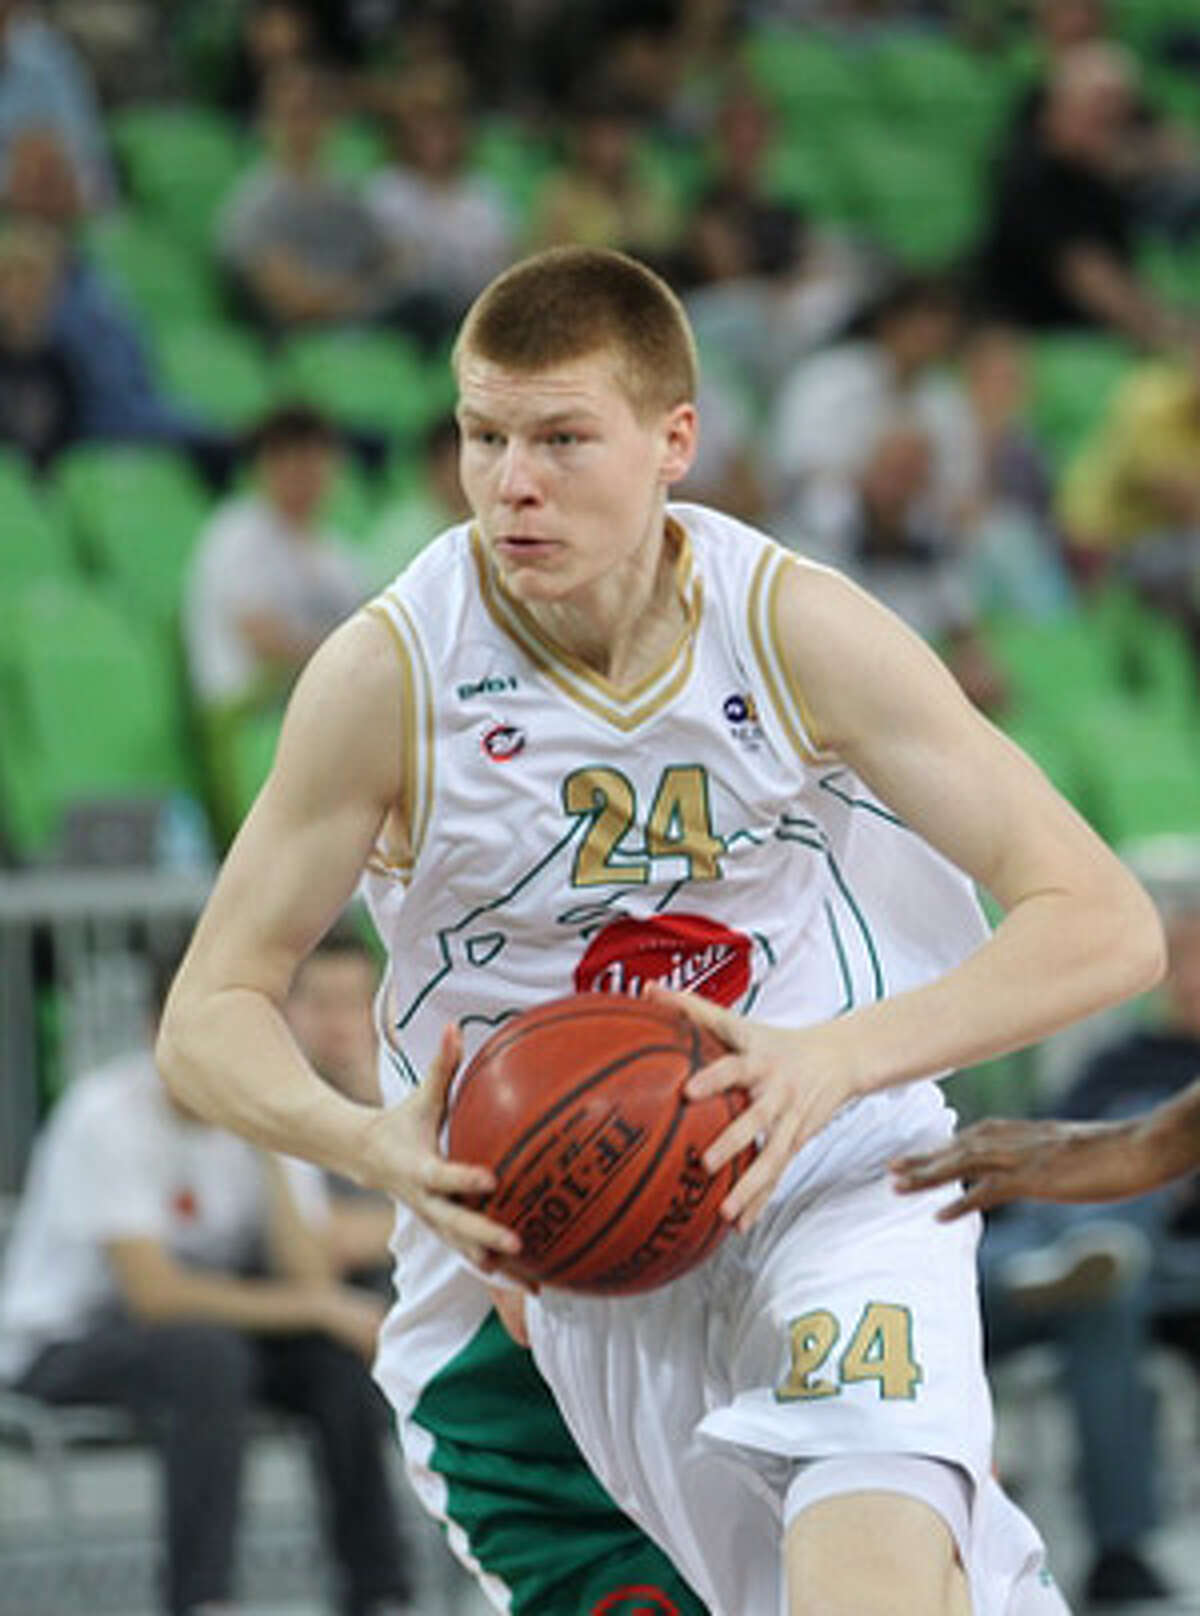 12. He represented the Latvian national team at the 2011 EuroBasket tournament. He was born in Valmiera, Latvia on Nov. 12, 1992.